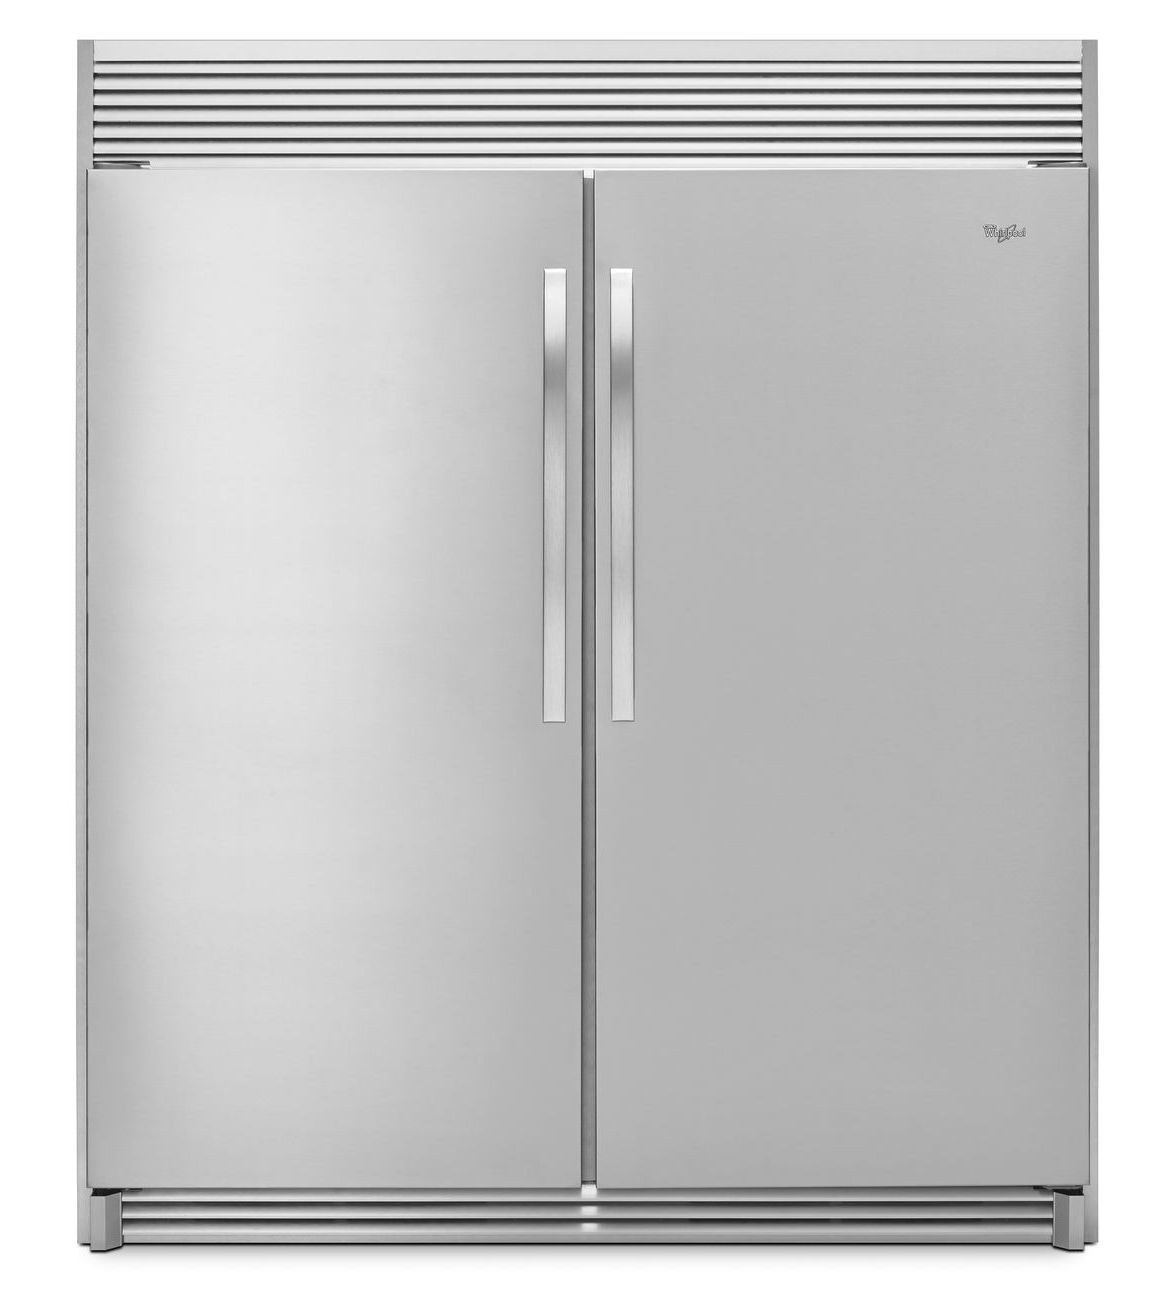 31 Inch Wide Sidekicks All Refrigerator With Led Lighting 18 Cu Ft Wsr57r18dh Whirlpool Large Refrigerator Kitchen Refrigerator Big Refrigerator